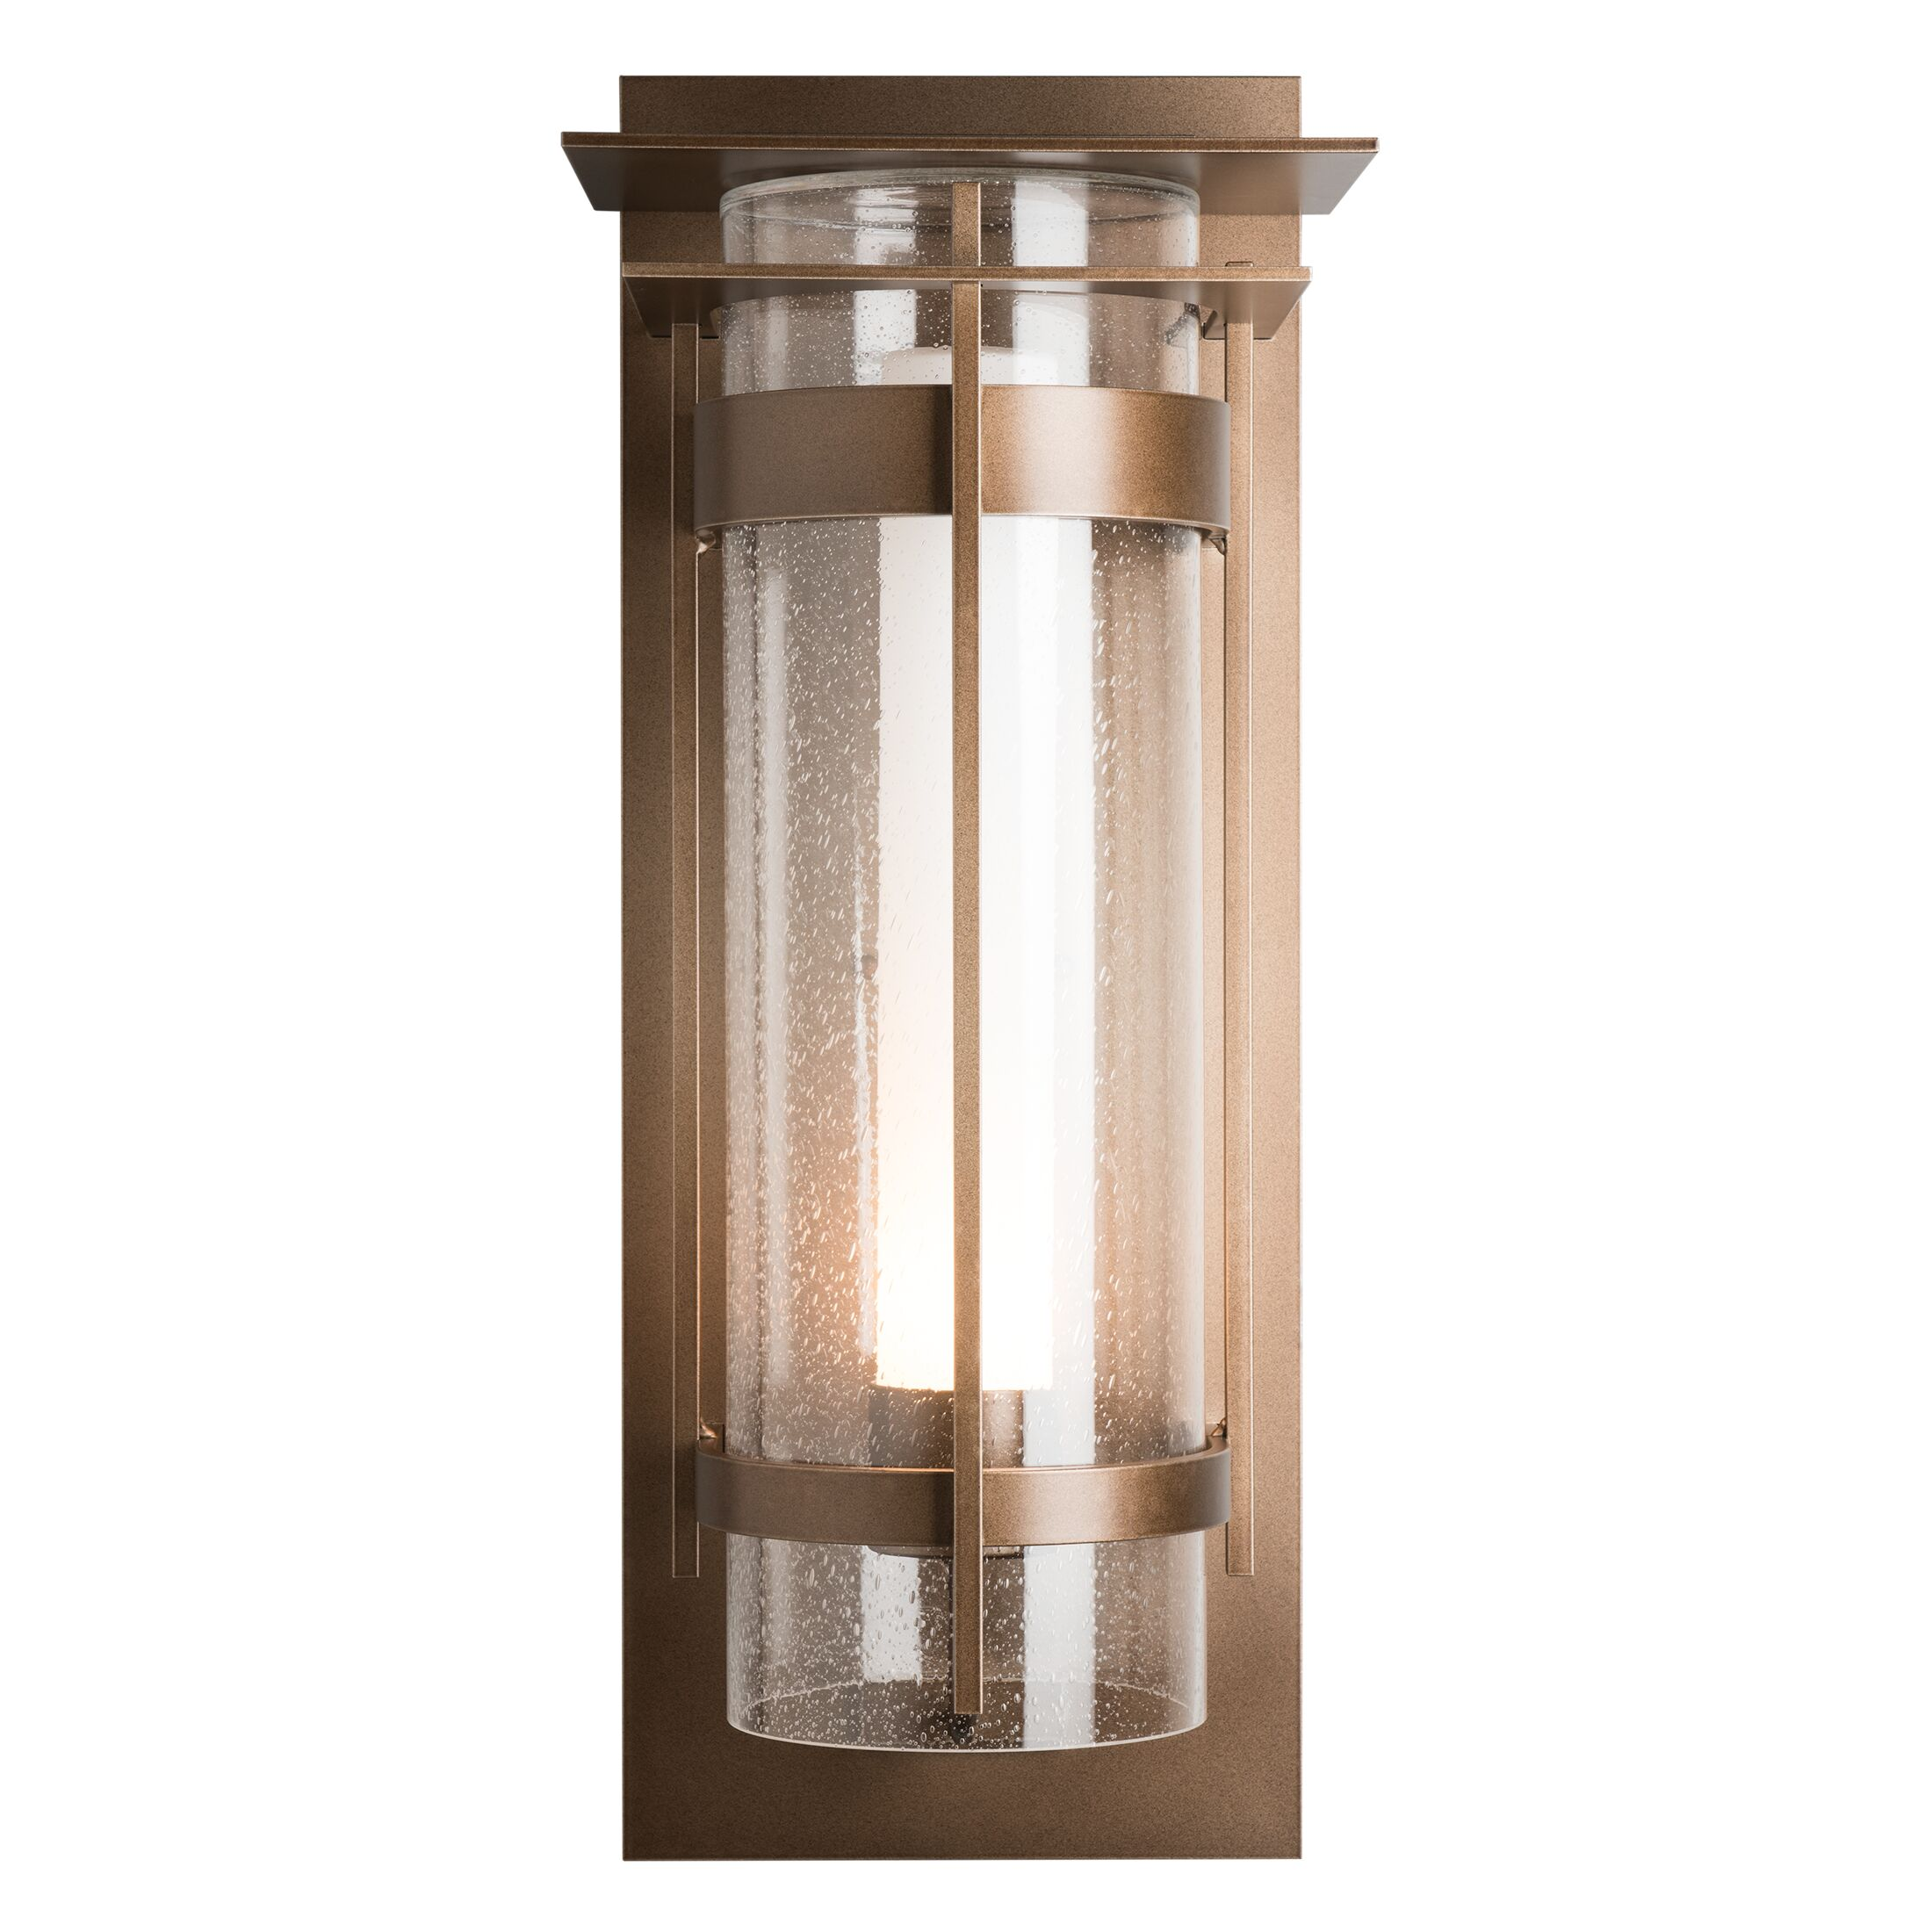 Thumbnail for Banded Seeded Glass XL Outdoor Sconce with Top Plate